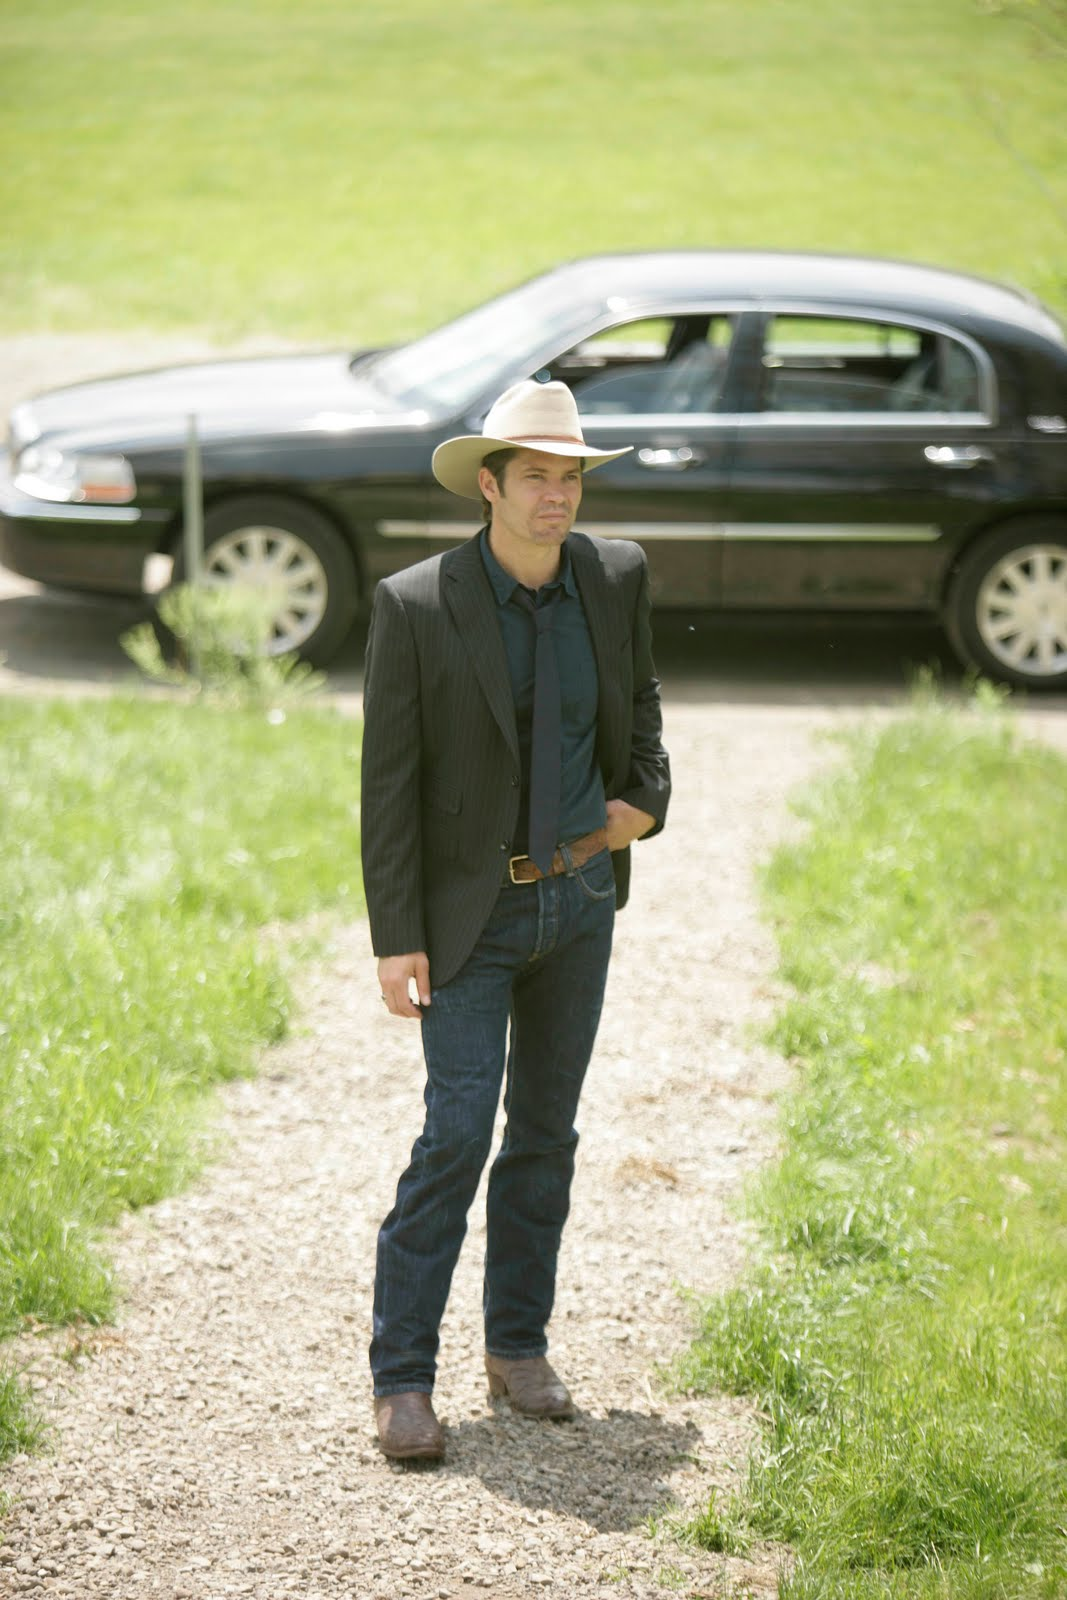 Justified Boots Raylan Givens